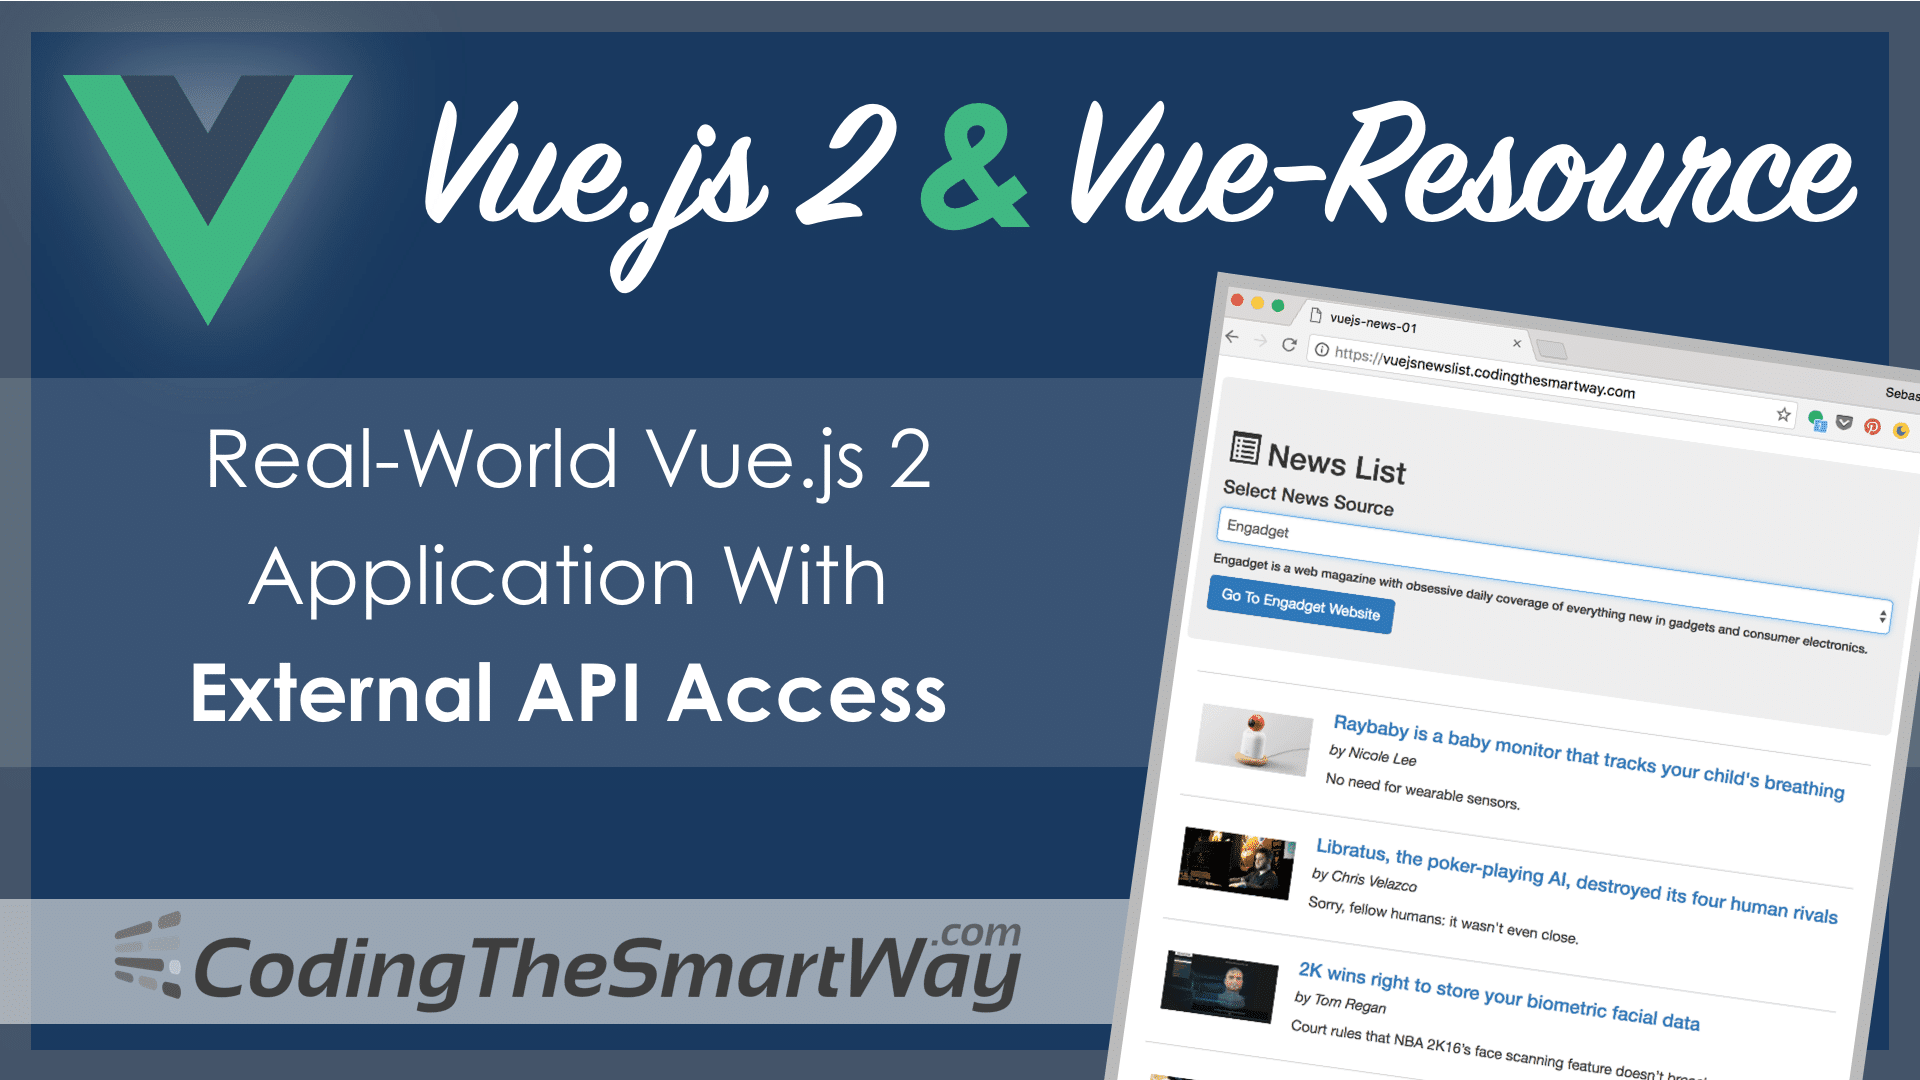 Vue js 2 & Vue-Resource - Real-World Vue Application With